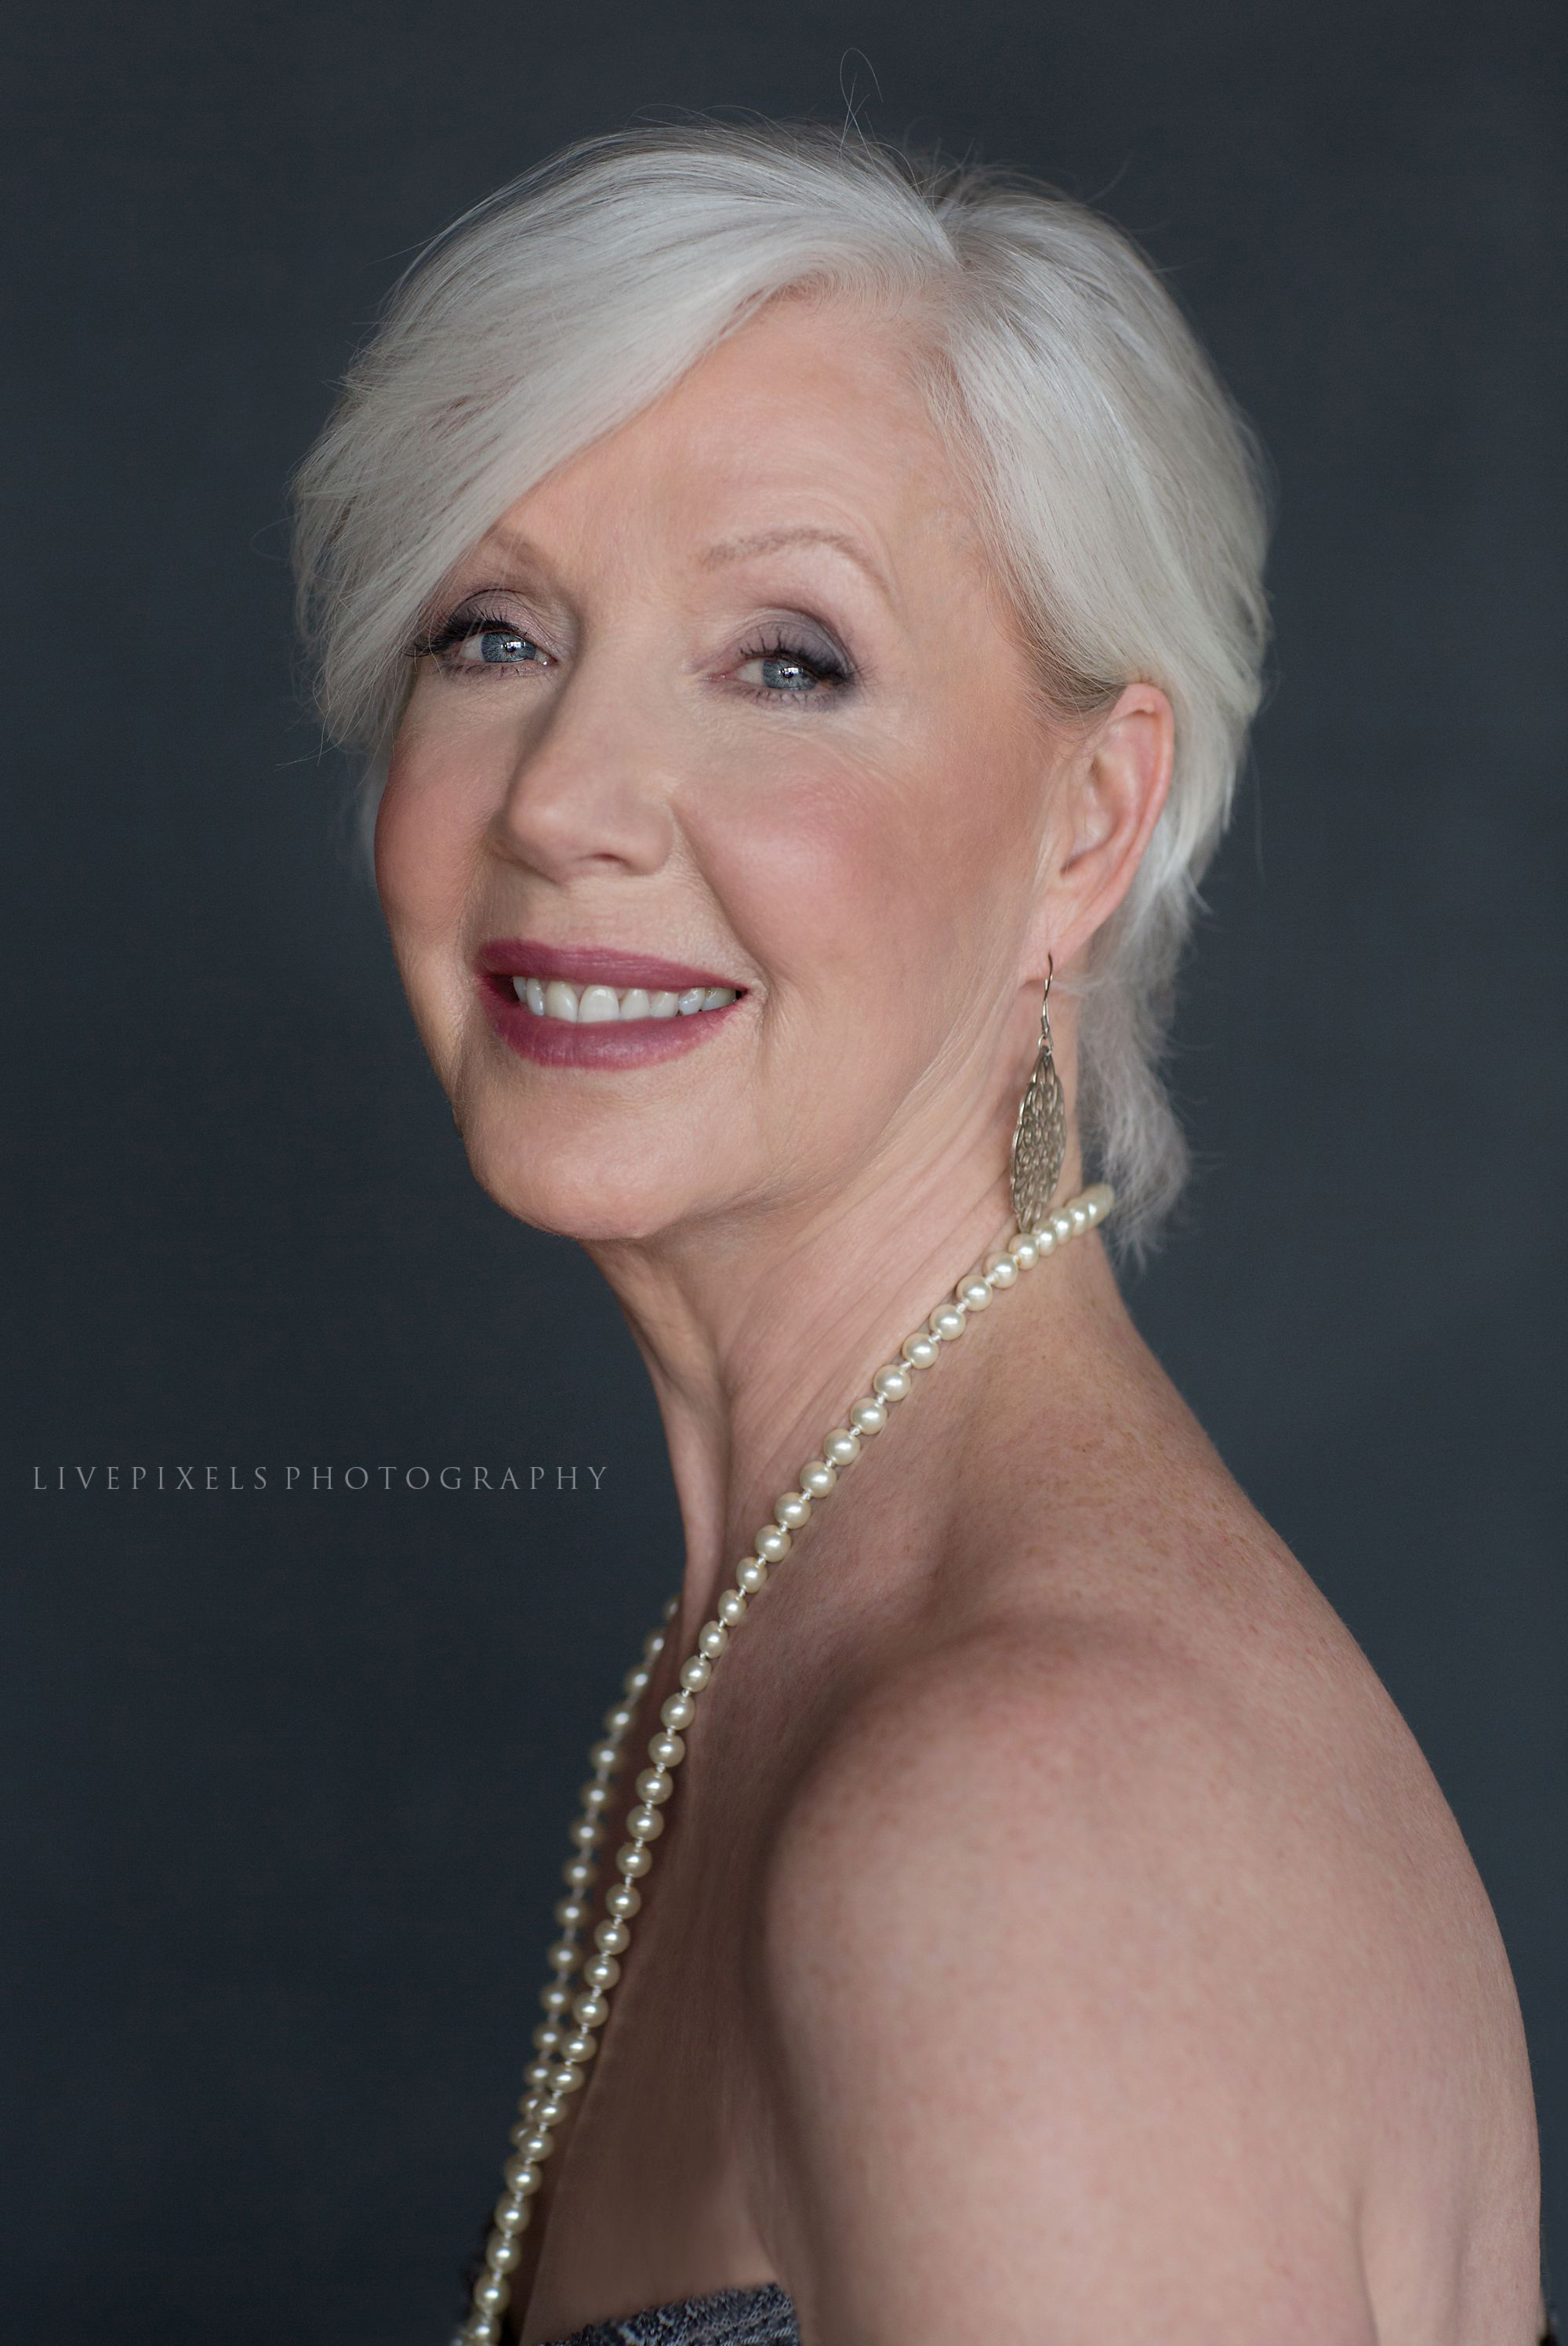 Gorgeous at 60, glamour studio portrait - Livepixels Photography, Toronto / livepixelsphotography.com